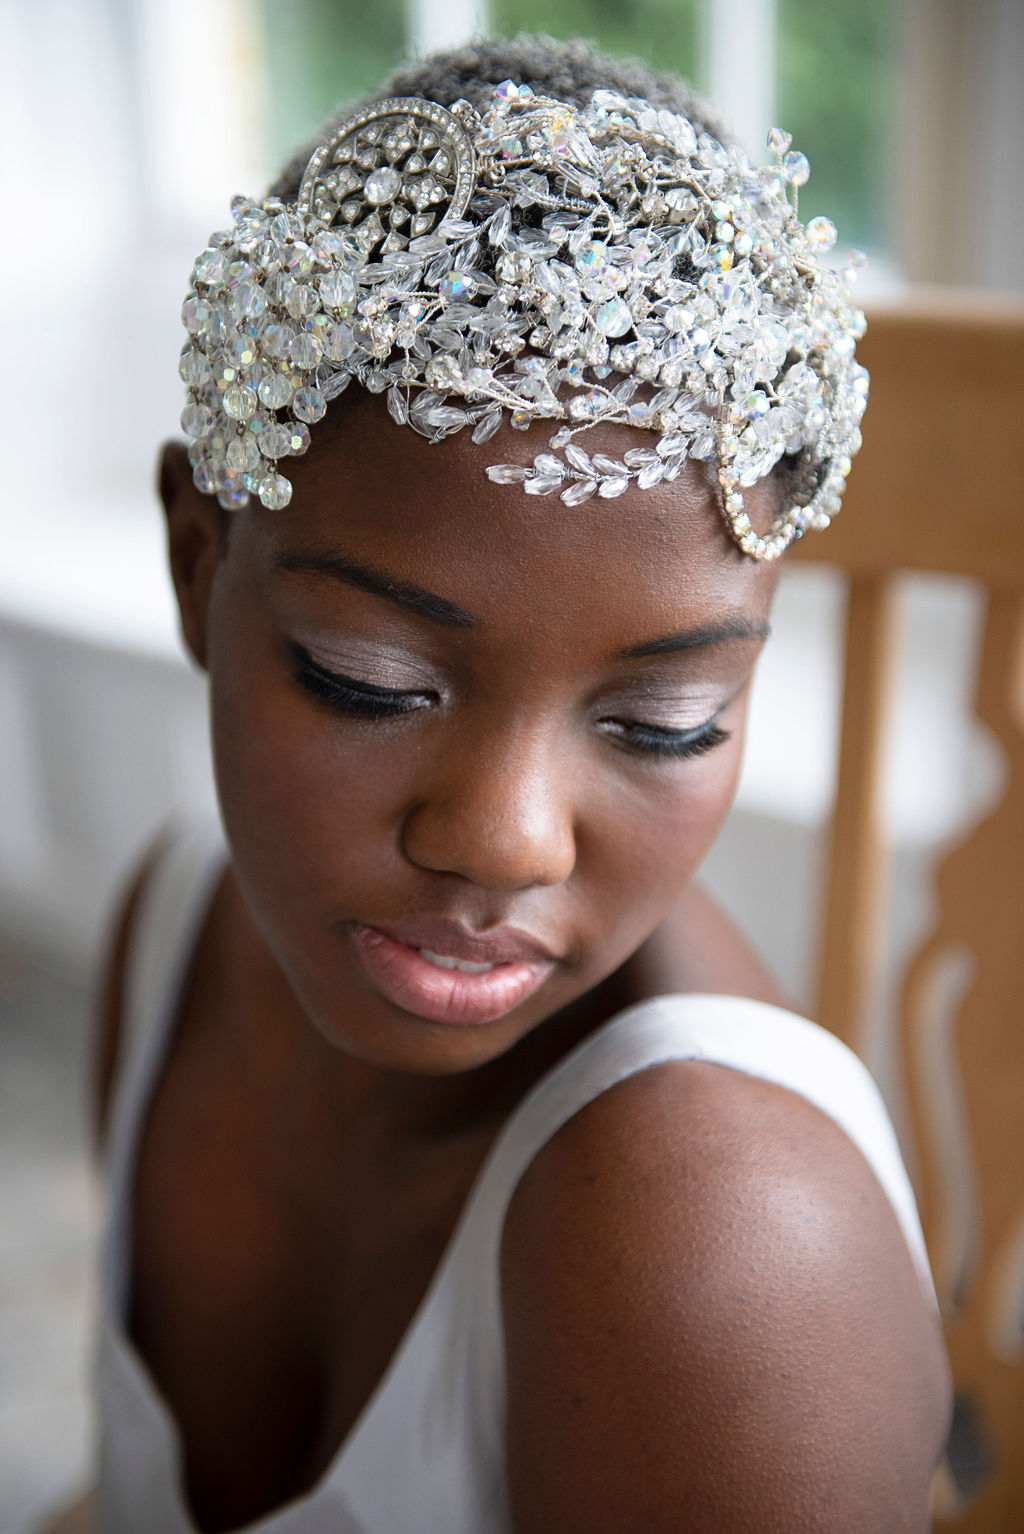 Alternative Wedding Head Piece and Accessory Ideas For The Creative Bride